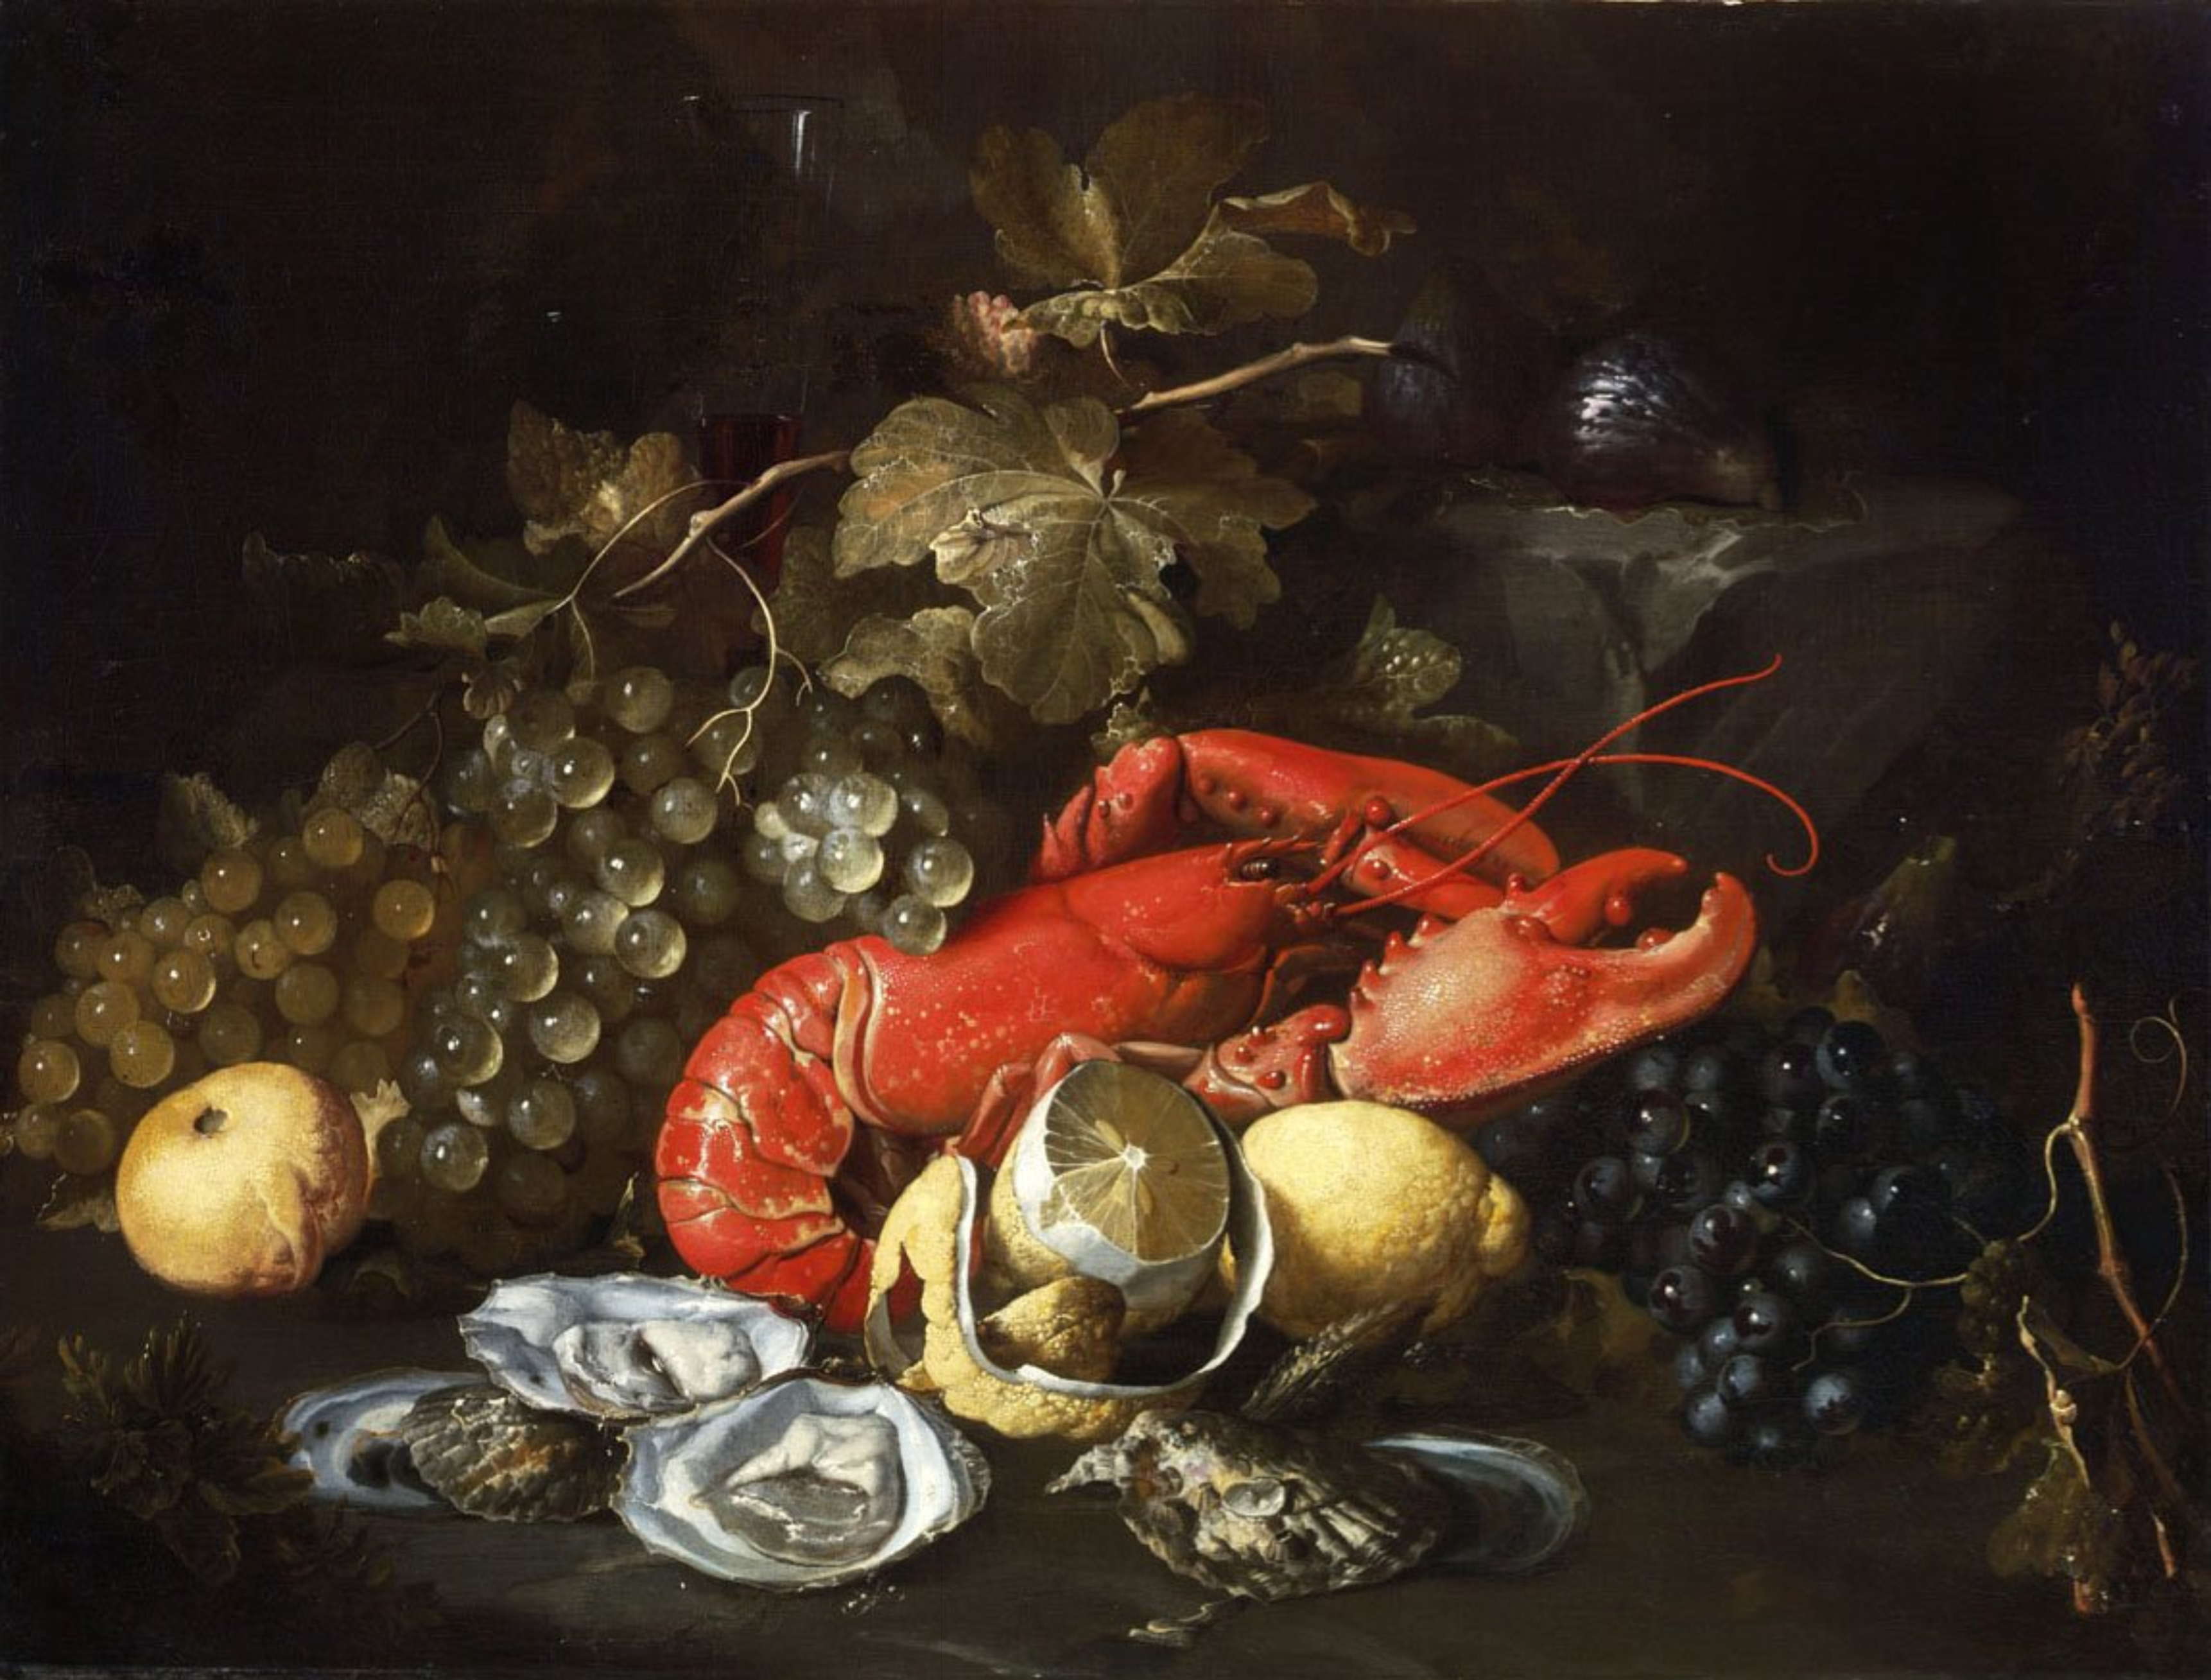 File:Alexander Coosemans - Still Life with Lobster and Oysters.jpg - Wikimedia Commons